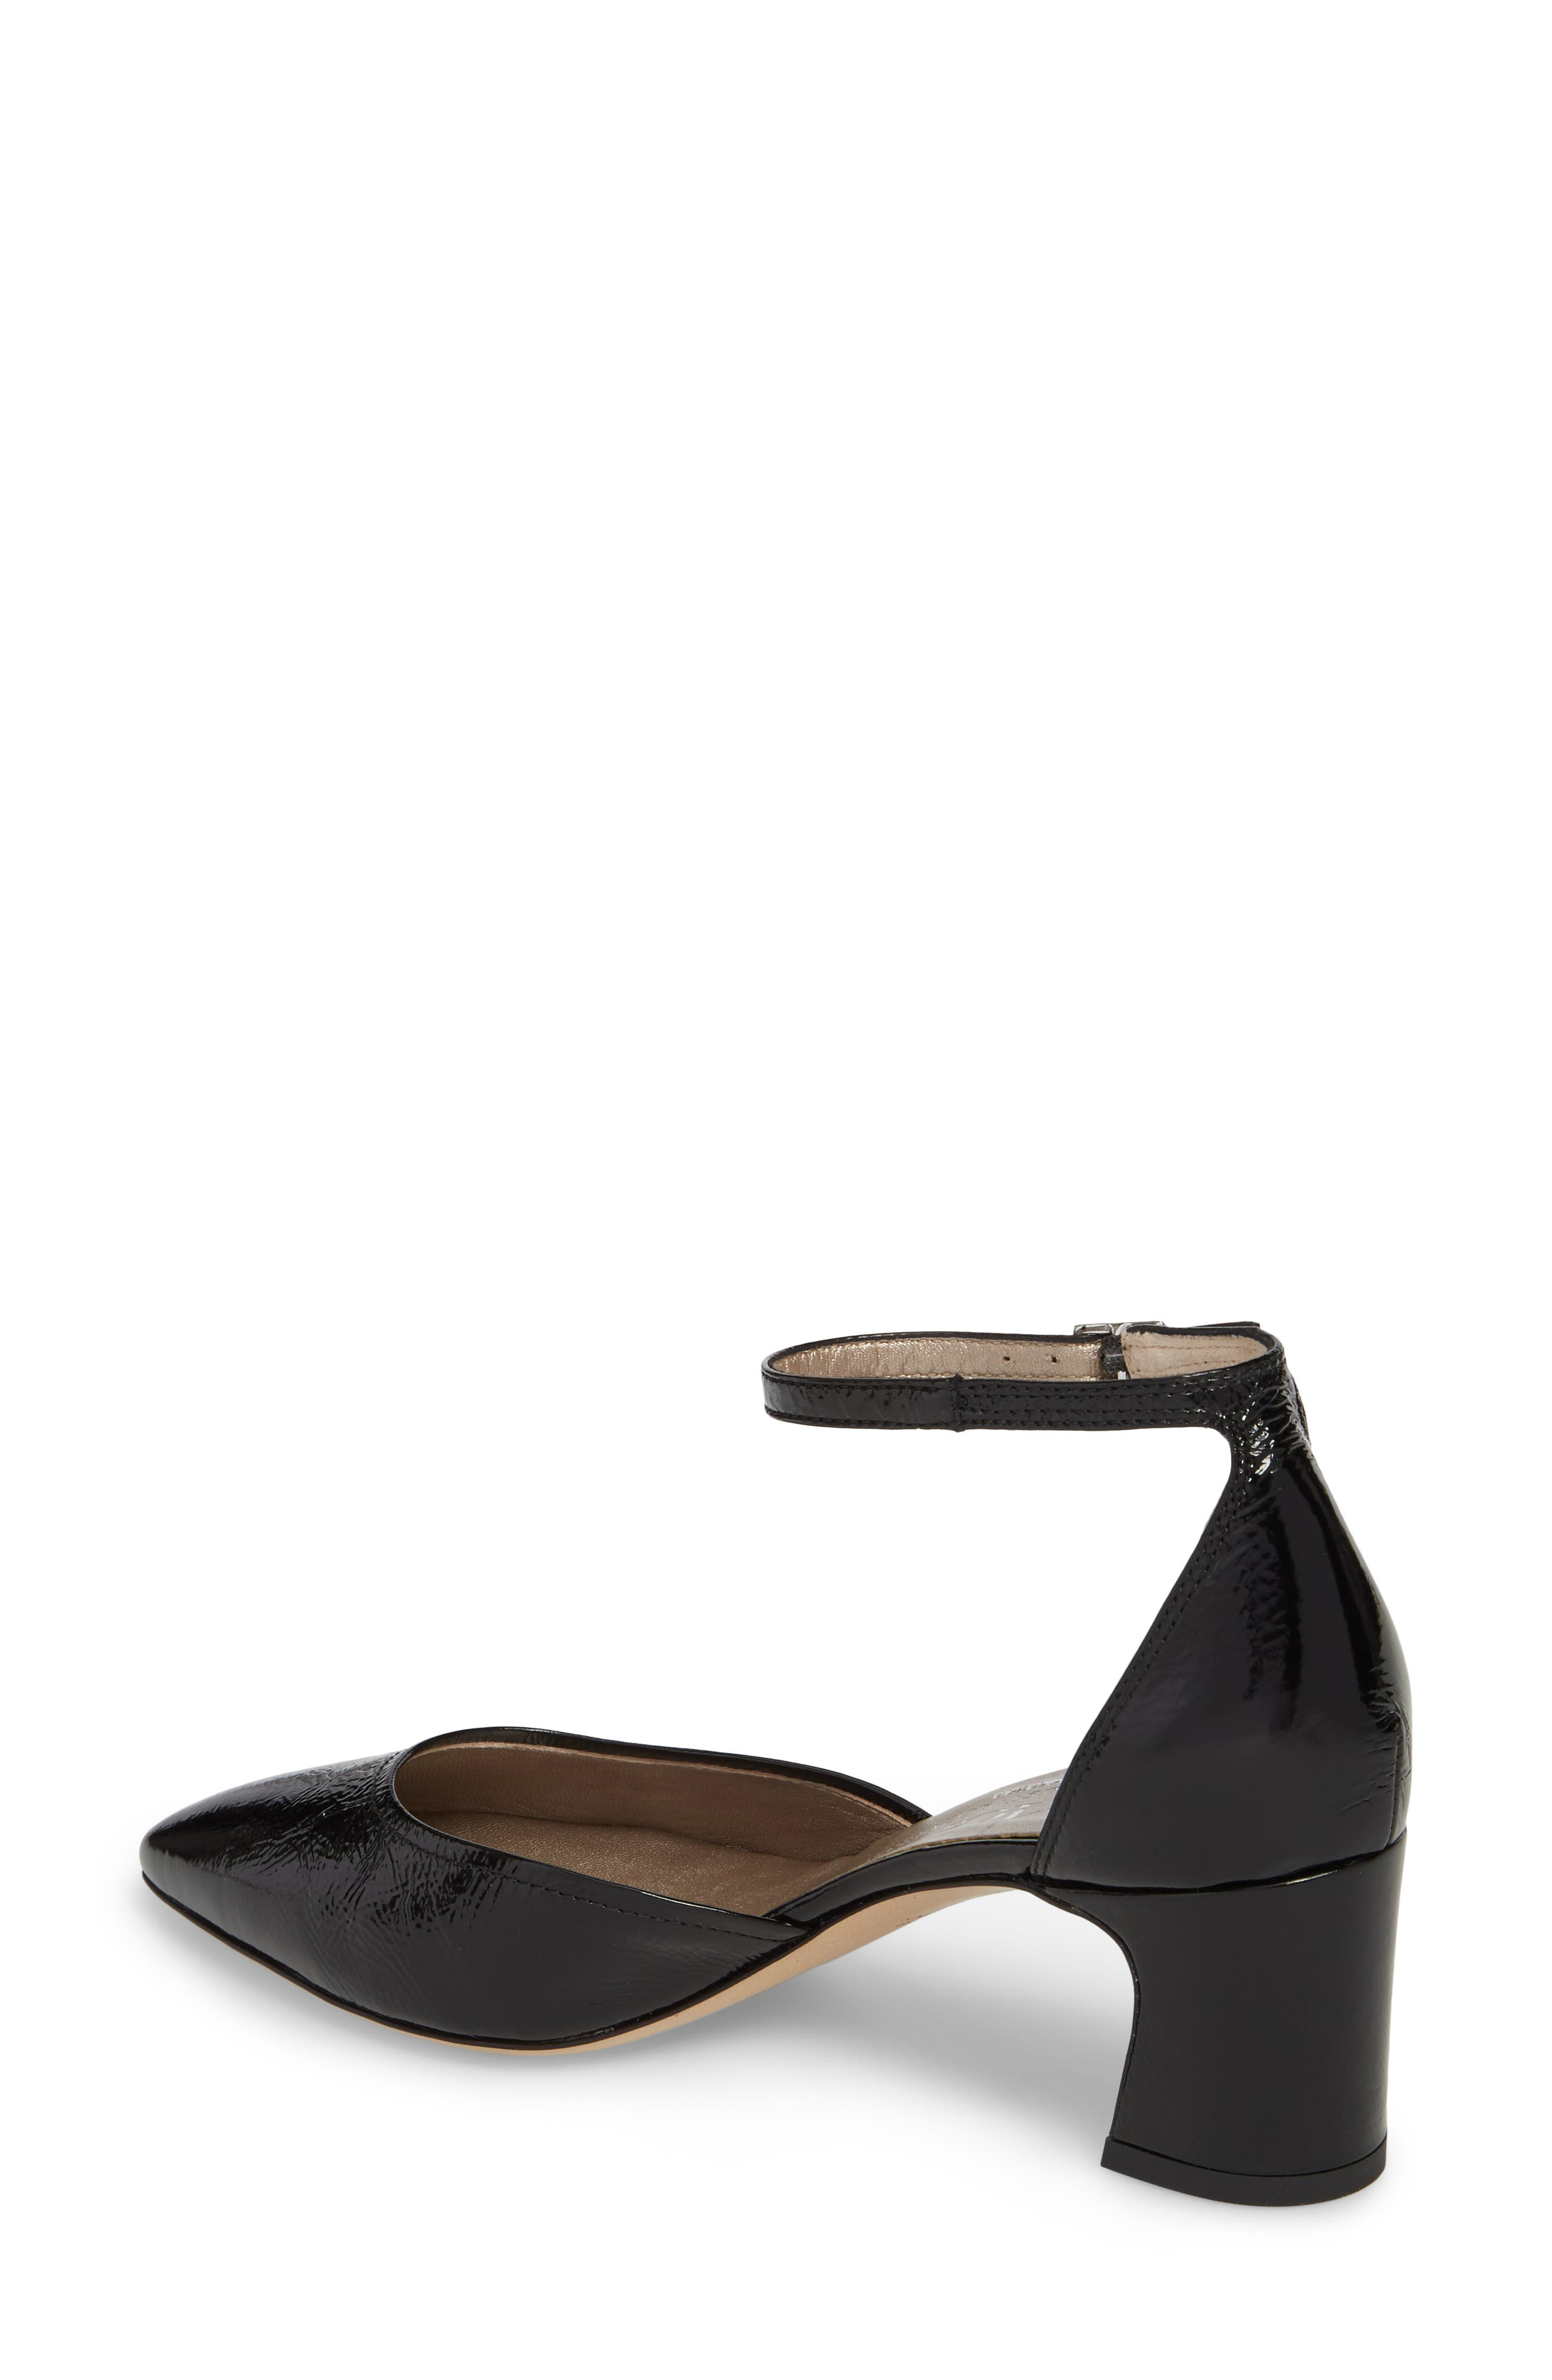 d'Orsay Ankle Strap Pump,                             Alternate thumbnail 2, color,                             BLACK GLAMMY LEATHER